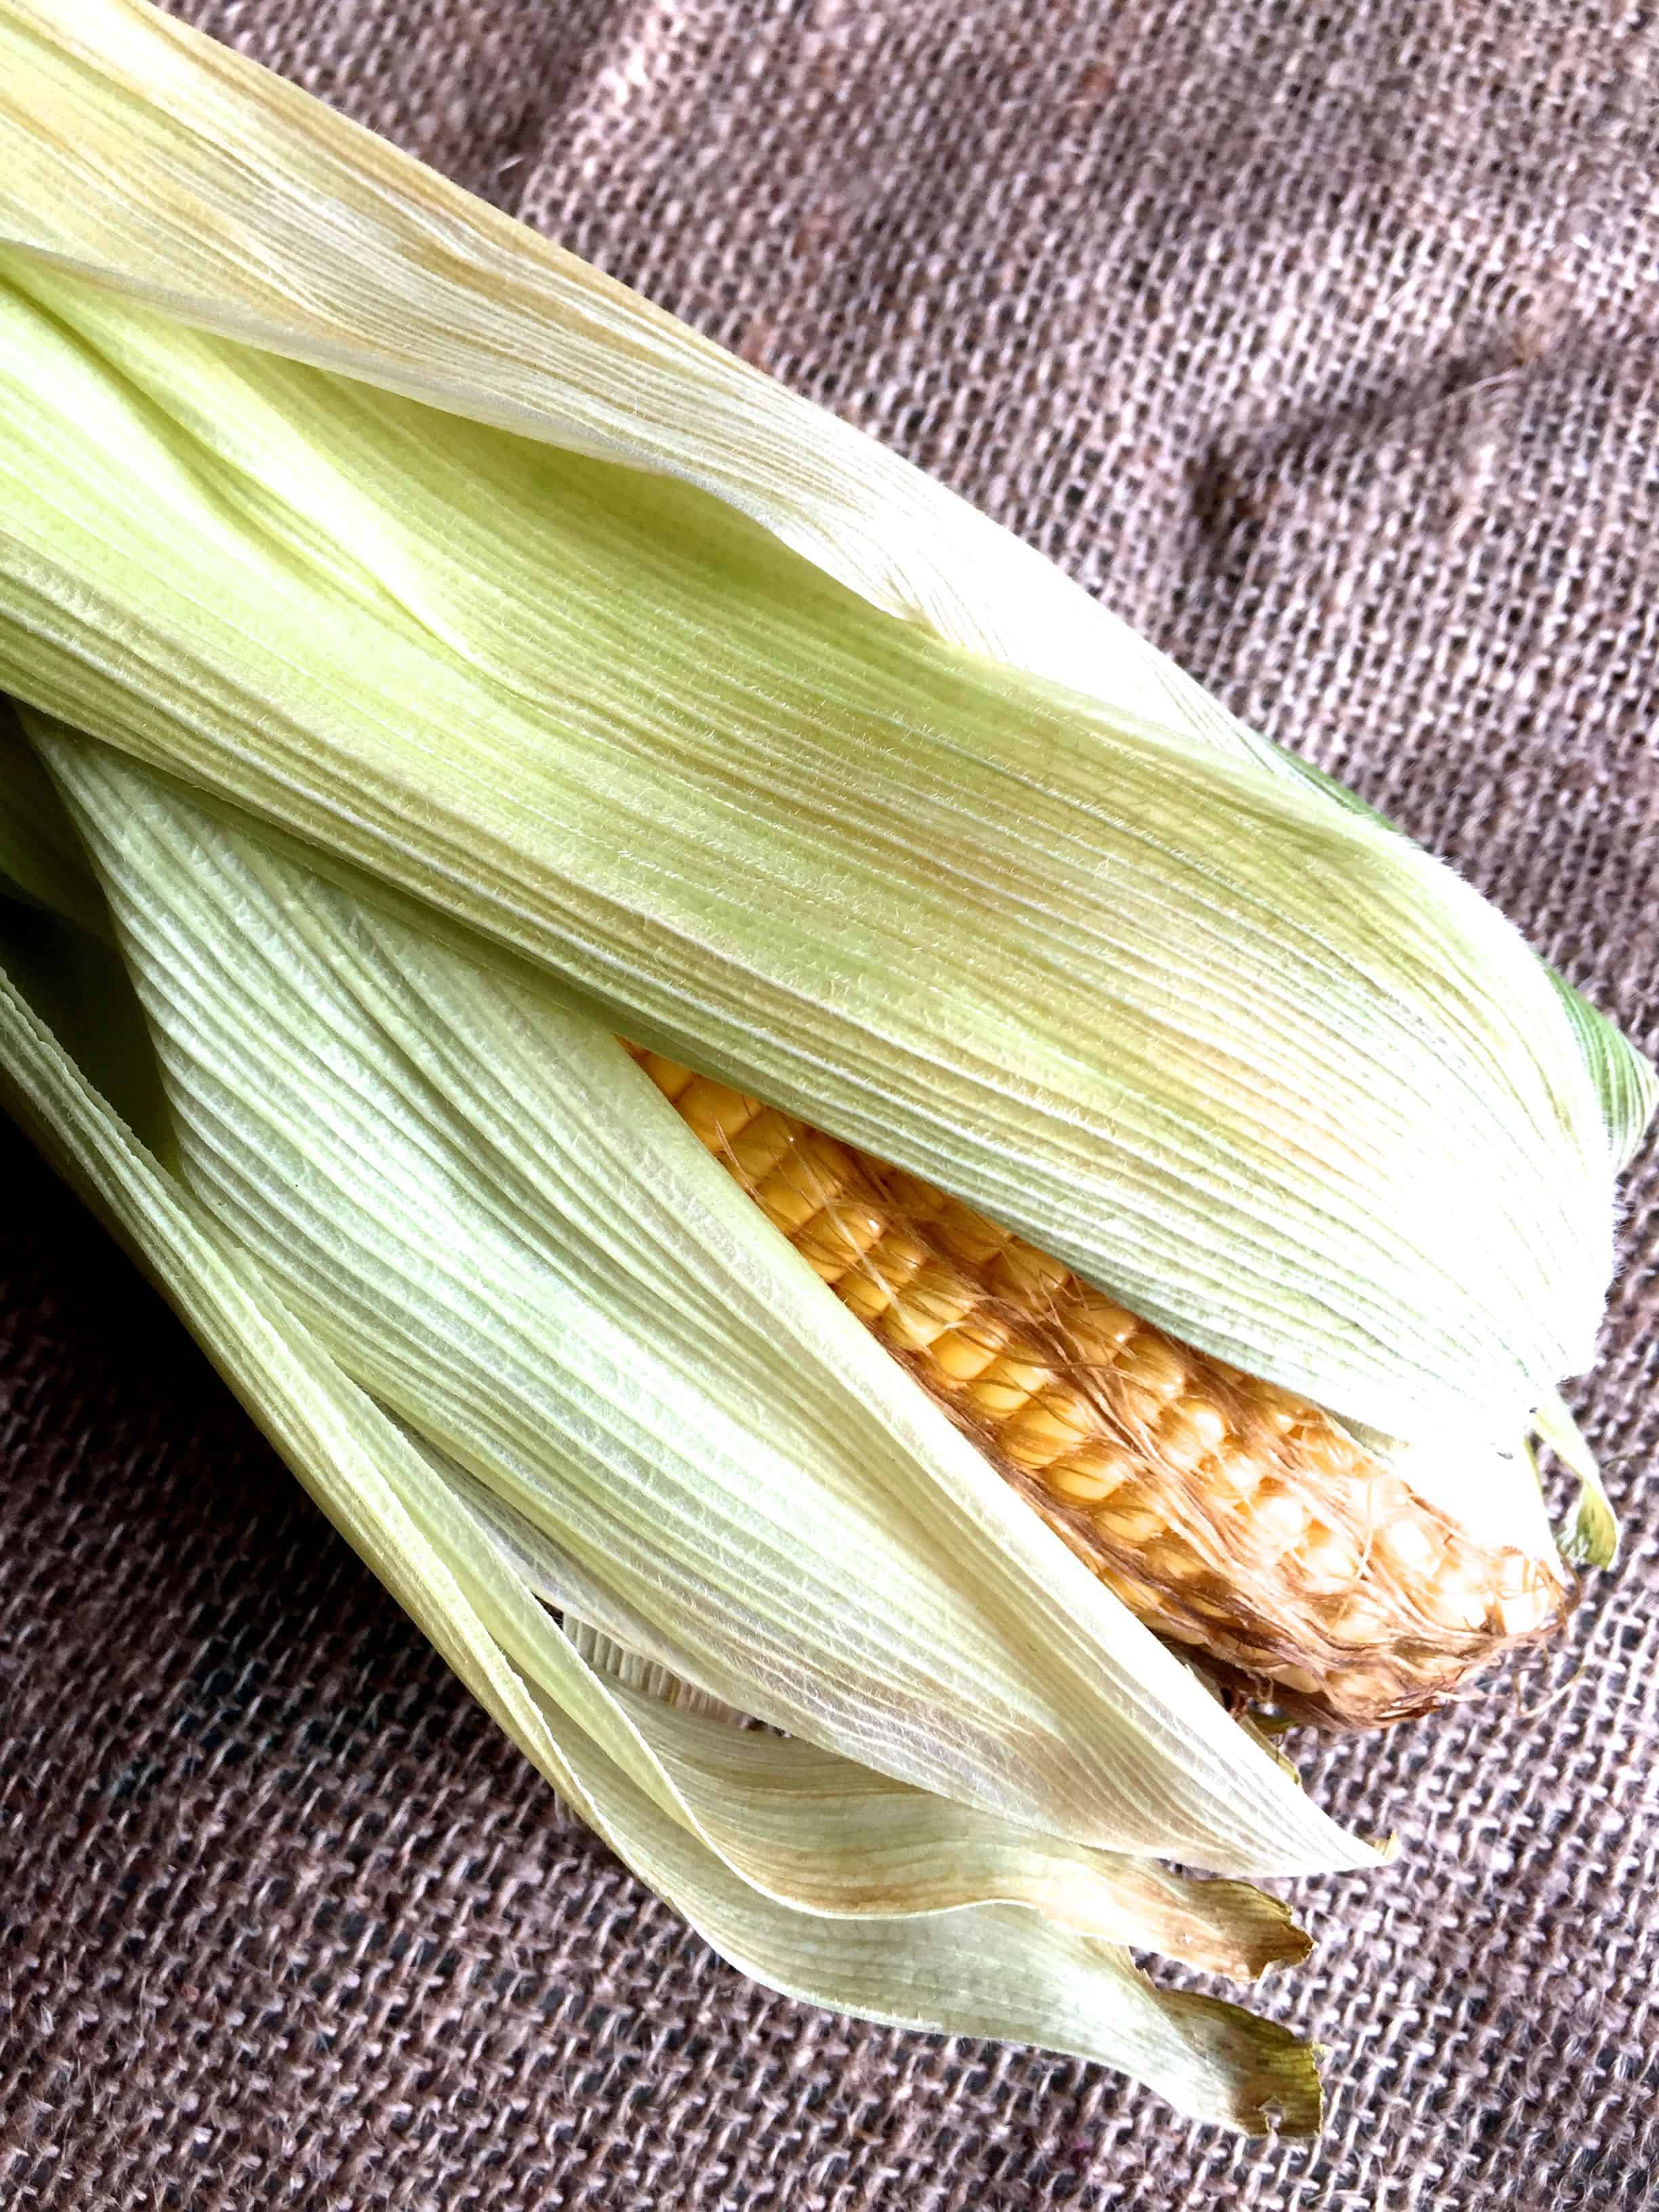 Fresh corn on a pice of sacking